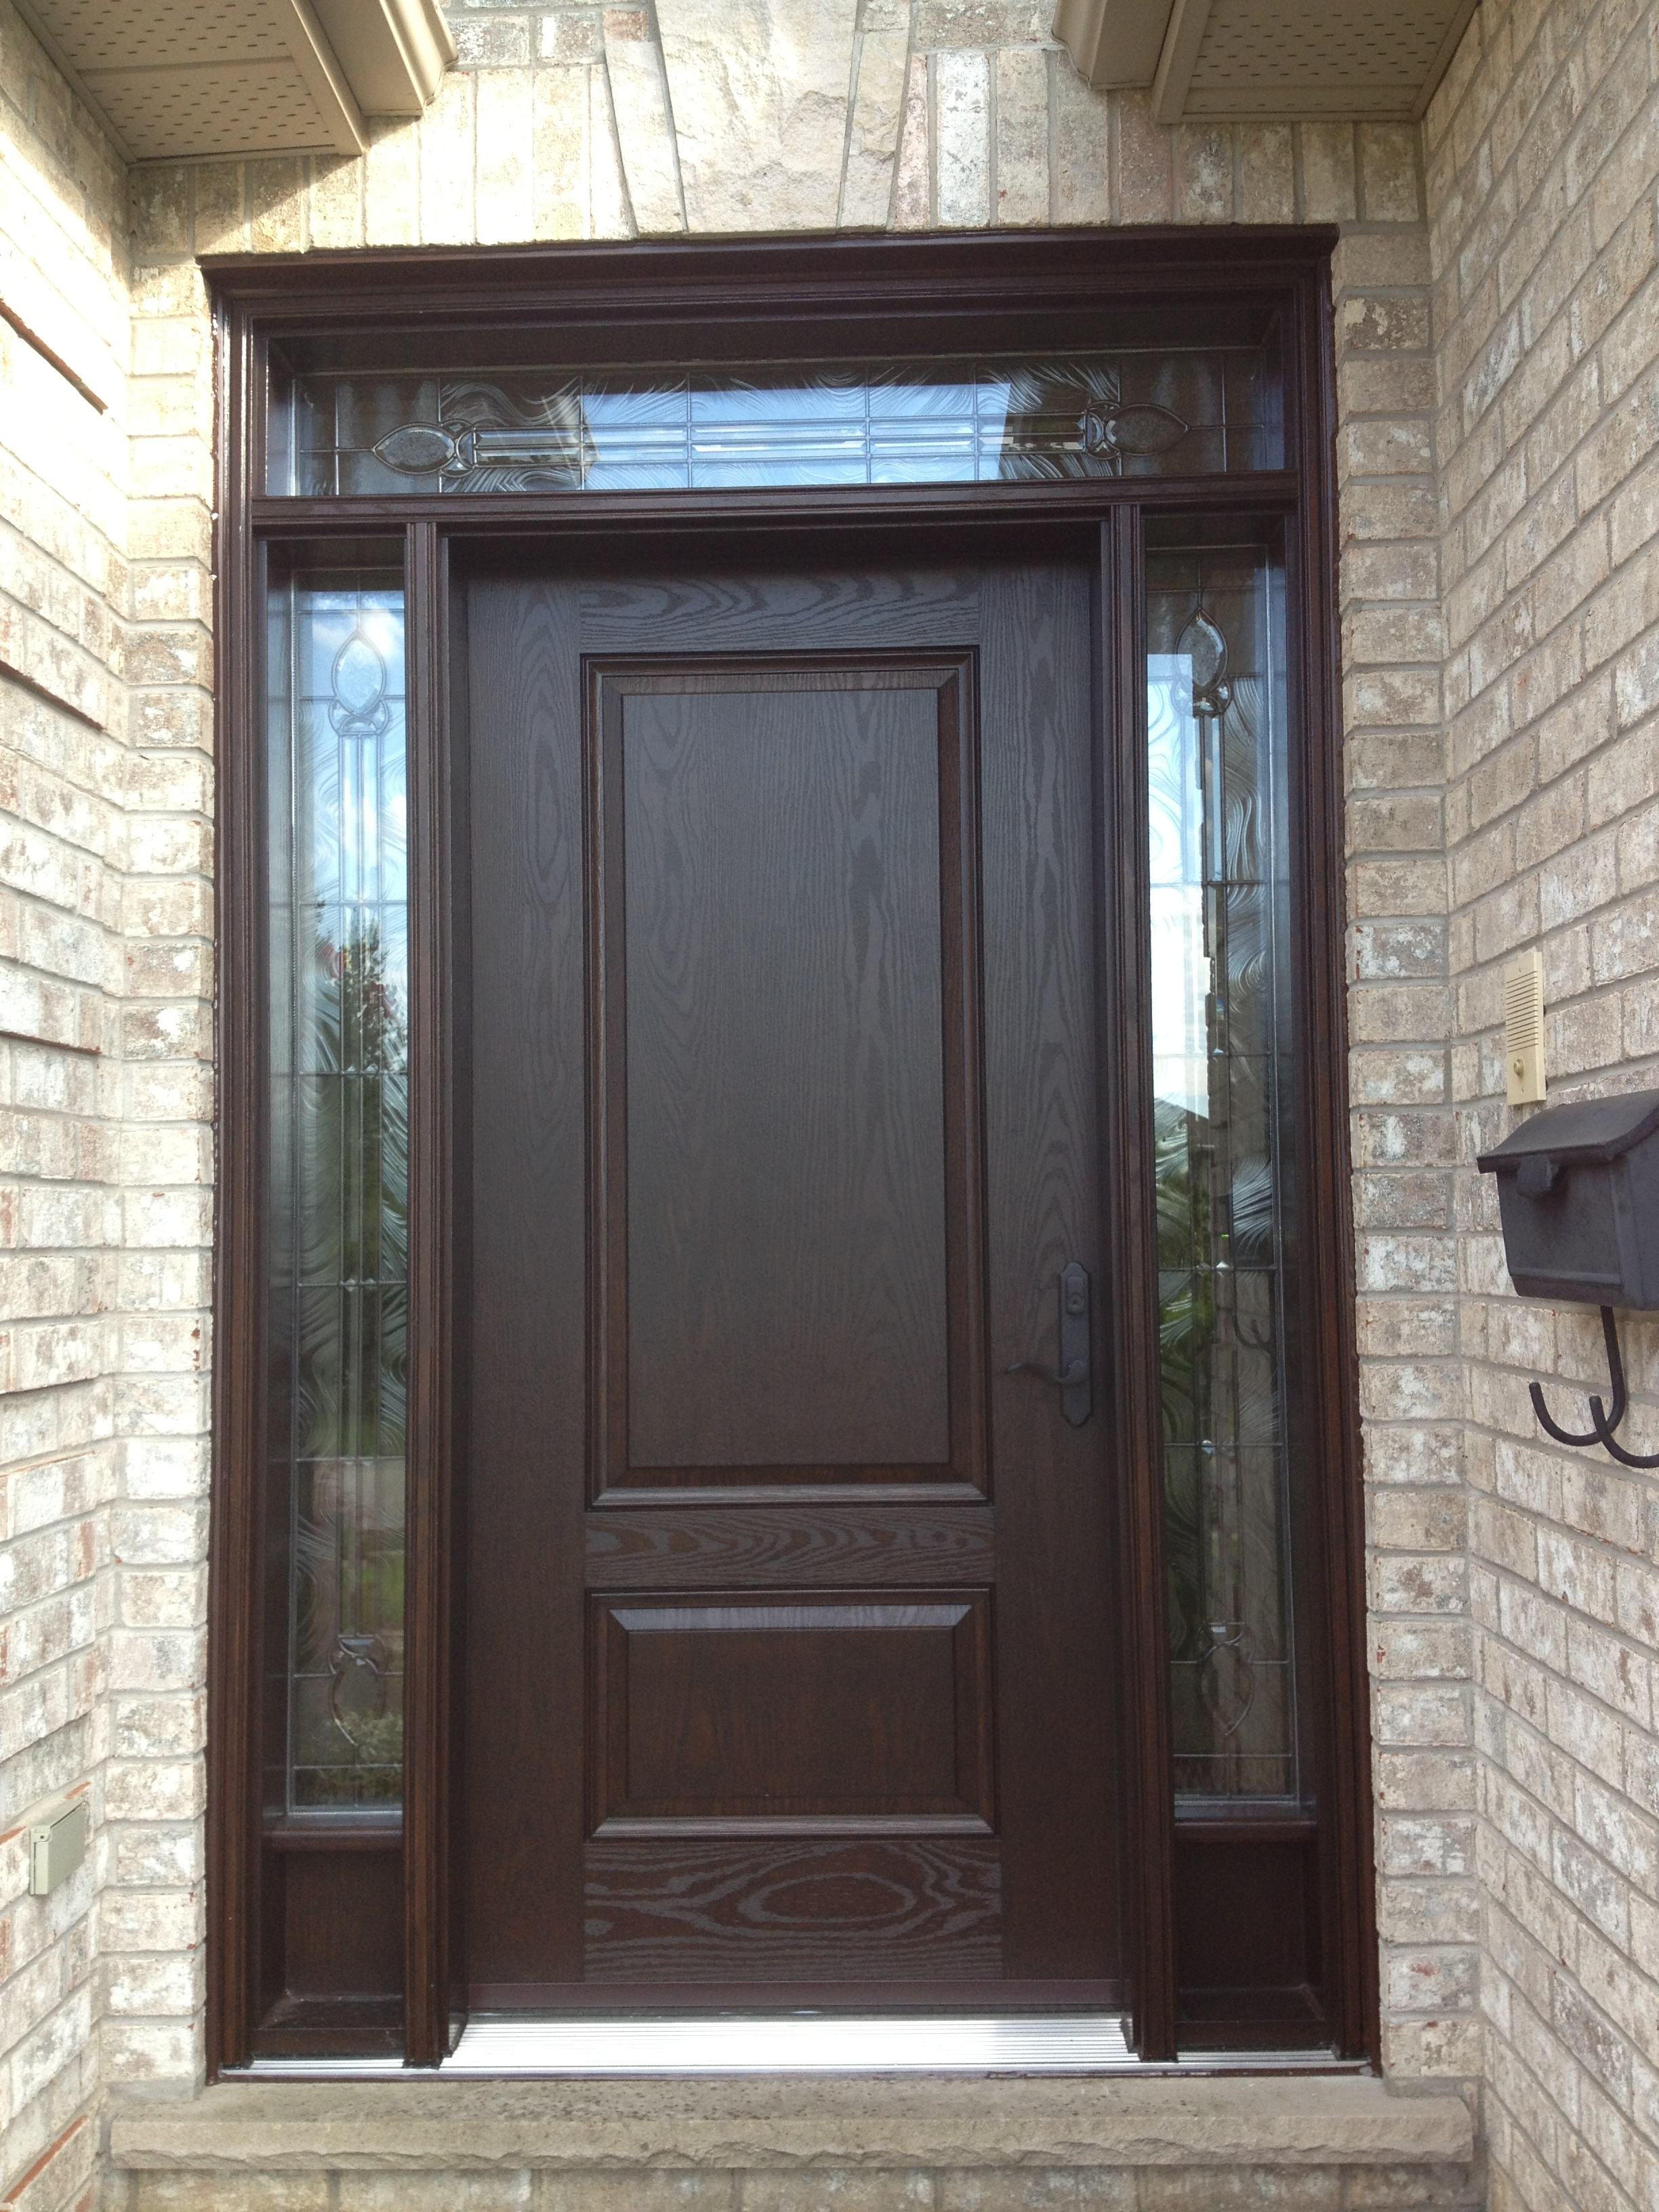 Fiber glass door with transom